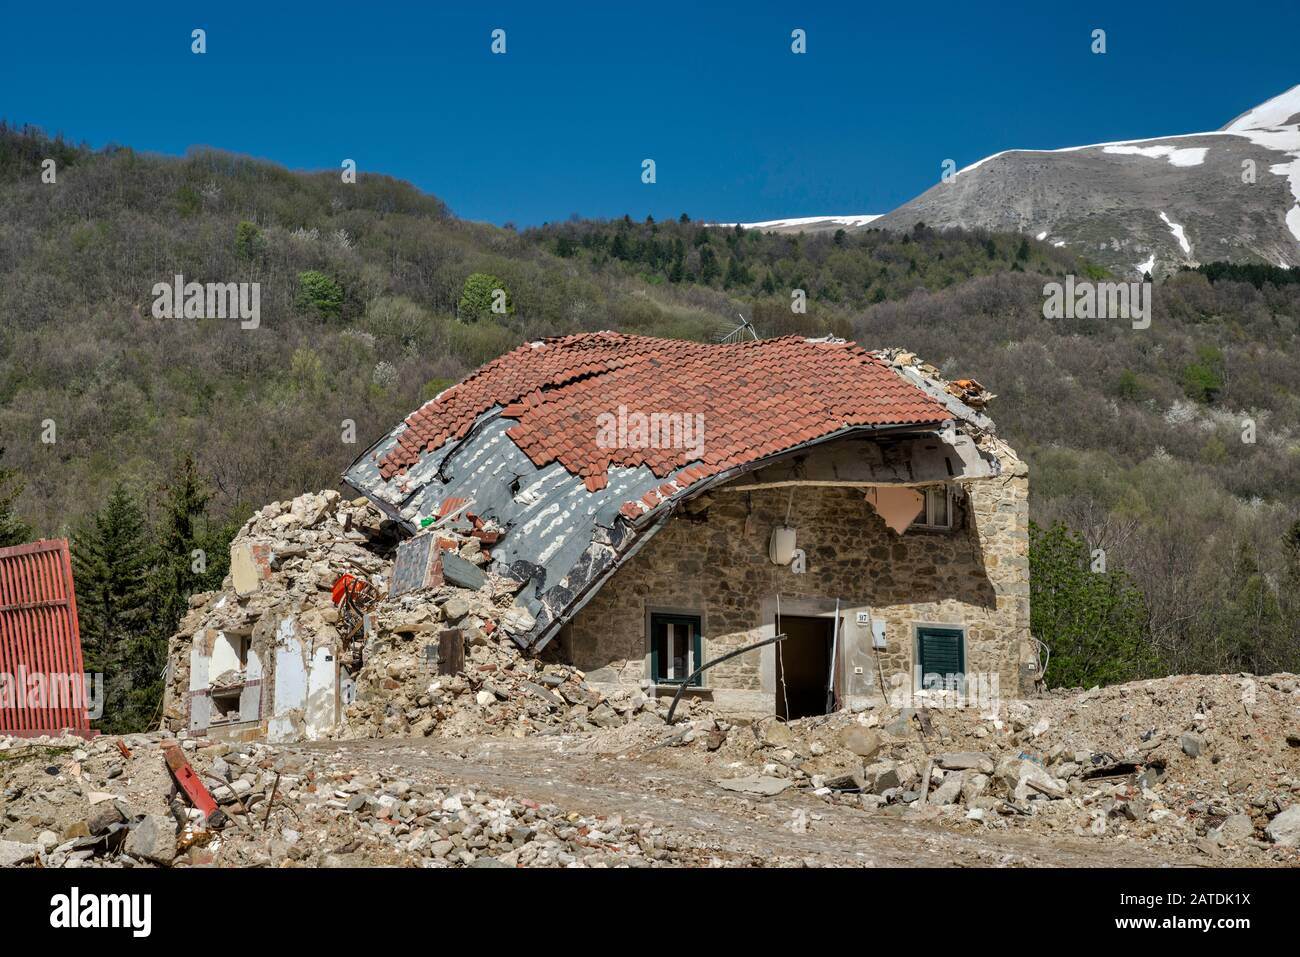 Ruined house in village of Piedilama, destroyed by earthquakes in October 2016, Monti Sibillini National Park, Central Apennines, Marche, Italy Stock Photo